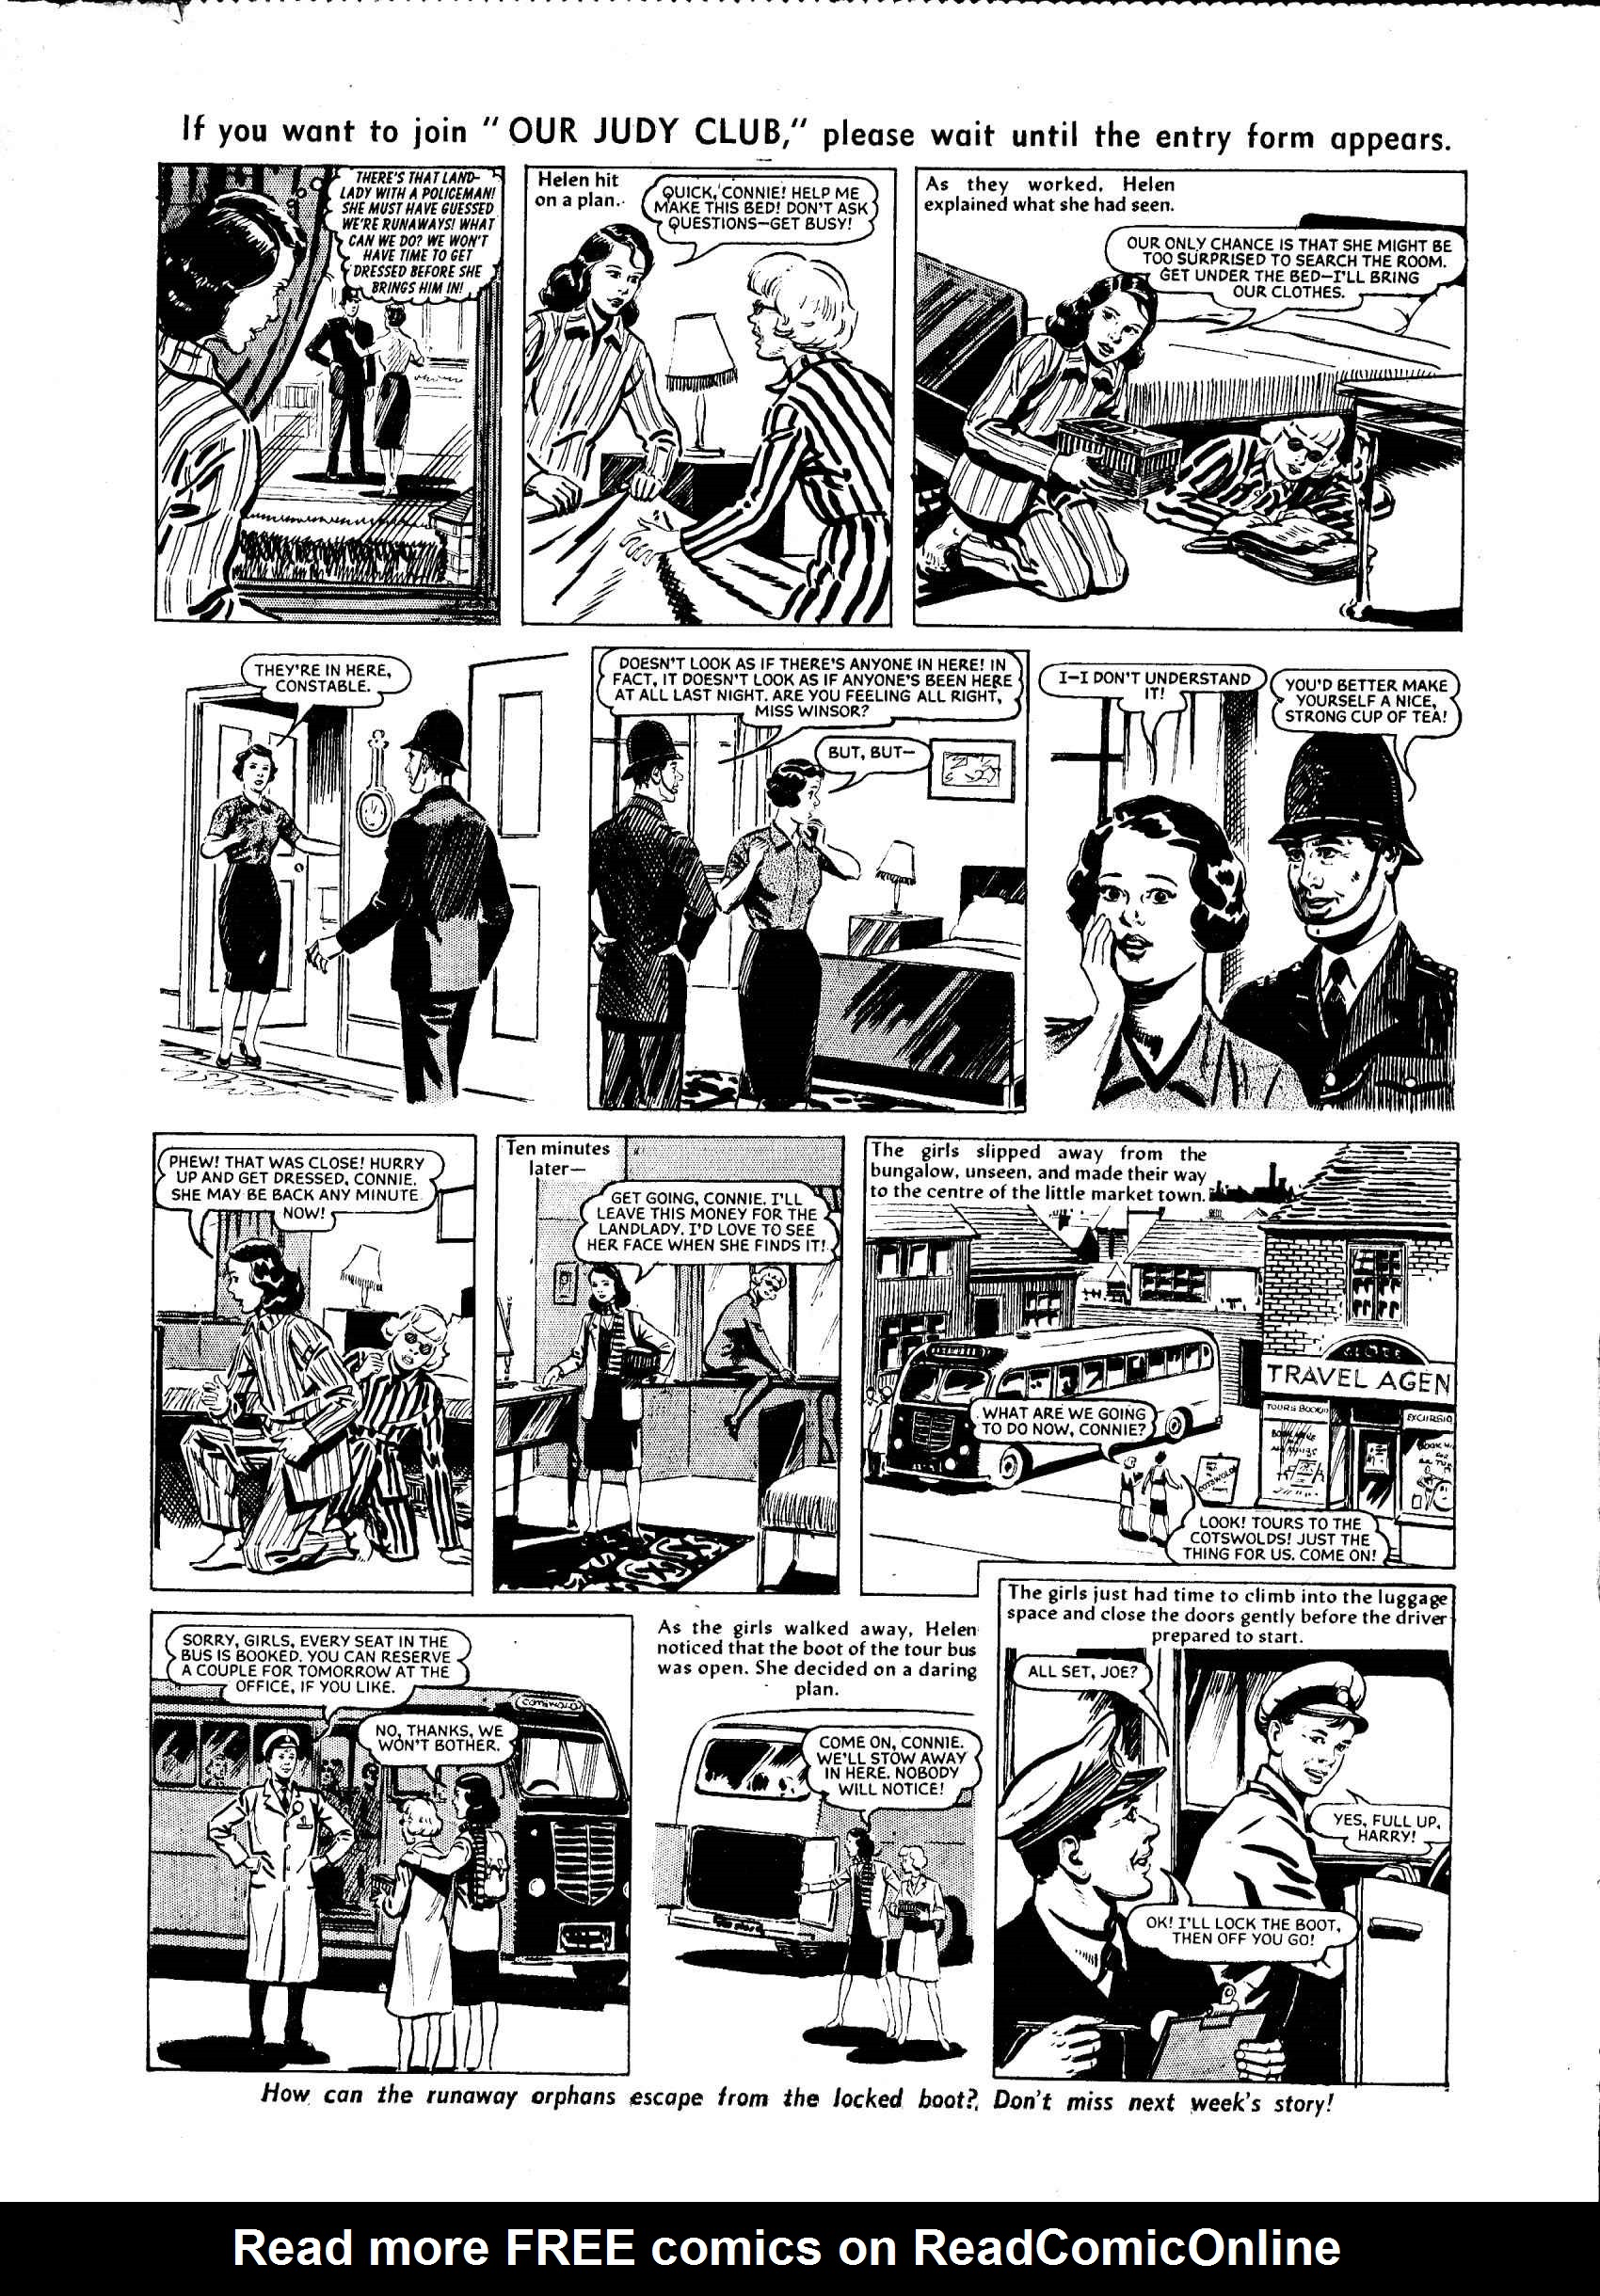 Read online Judy comic -  Issue #63 - 19